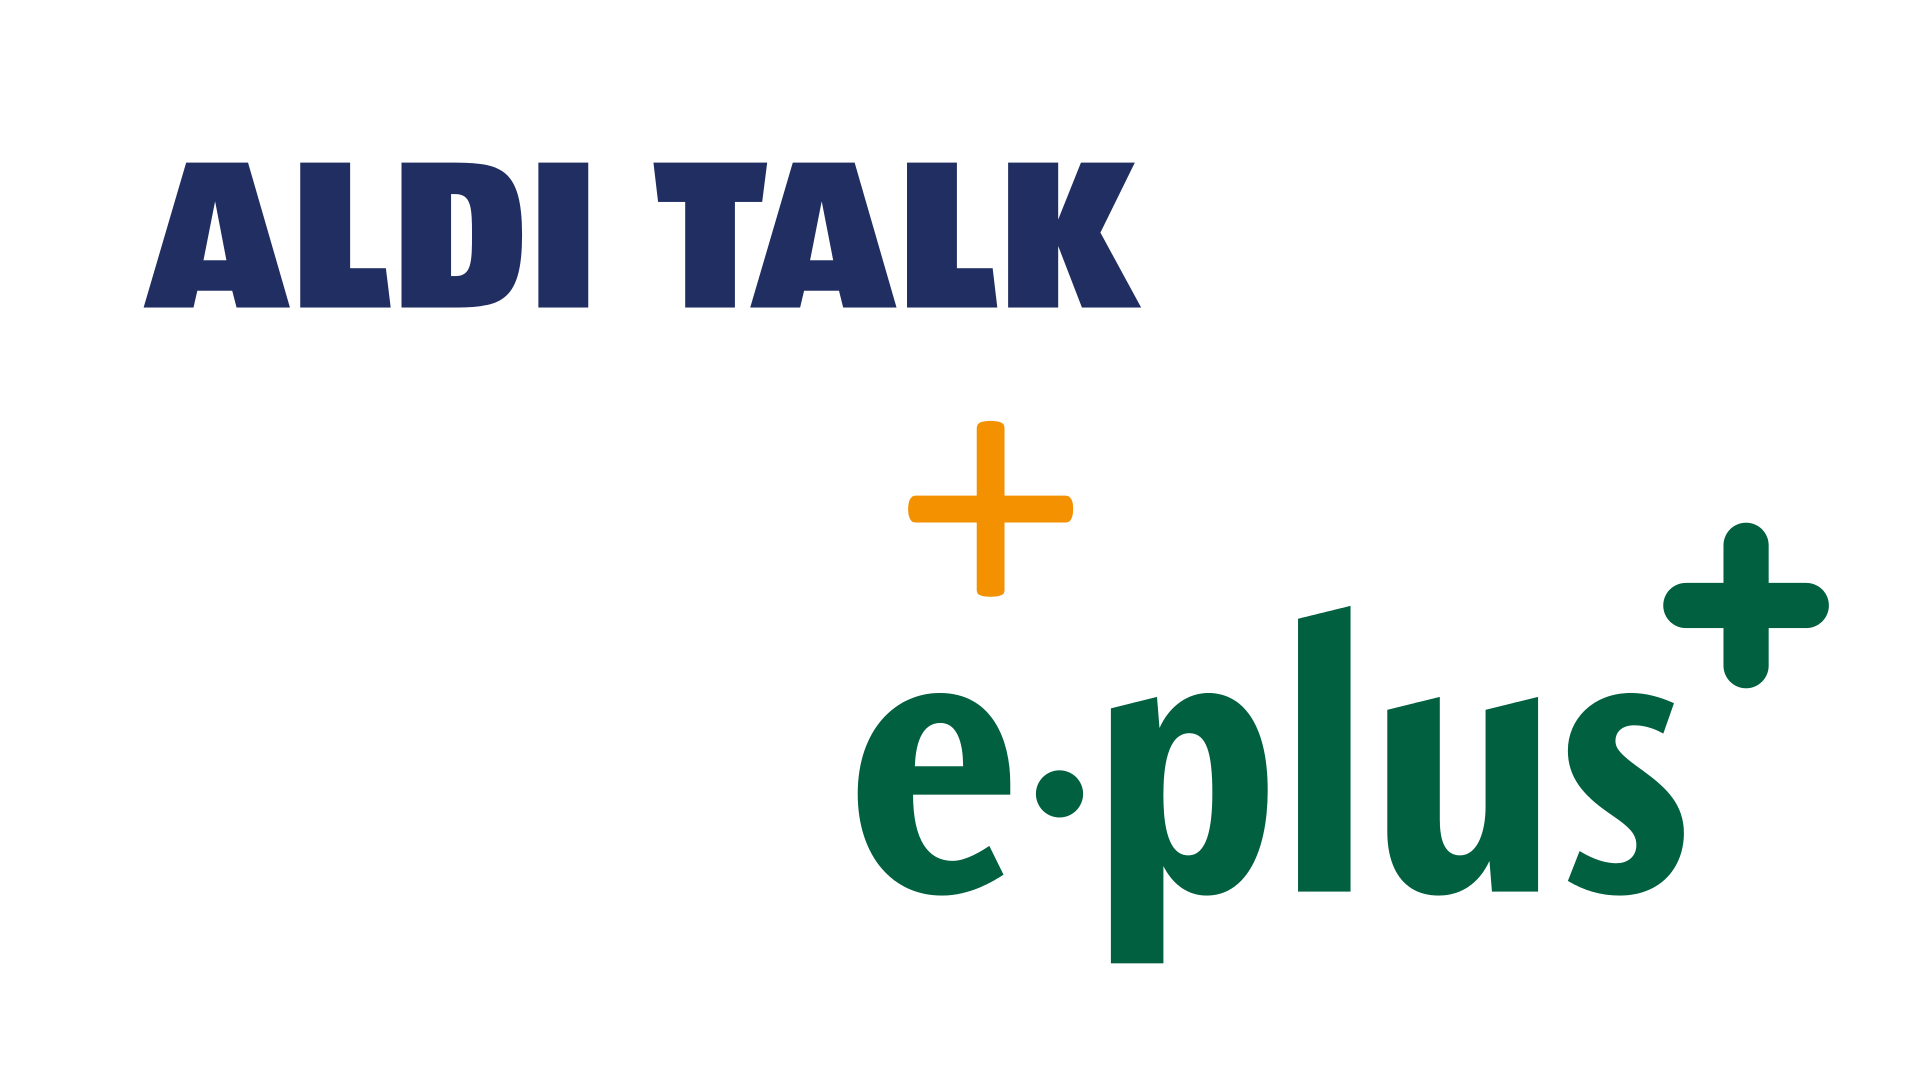 Recharge Alditalk with E-plus